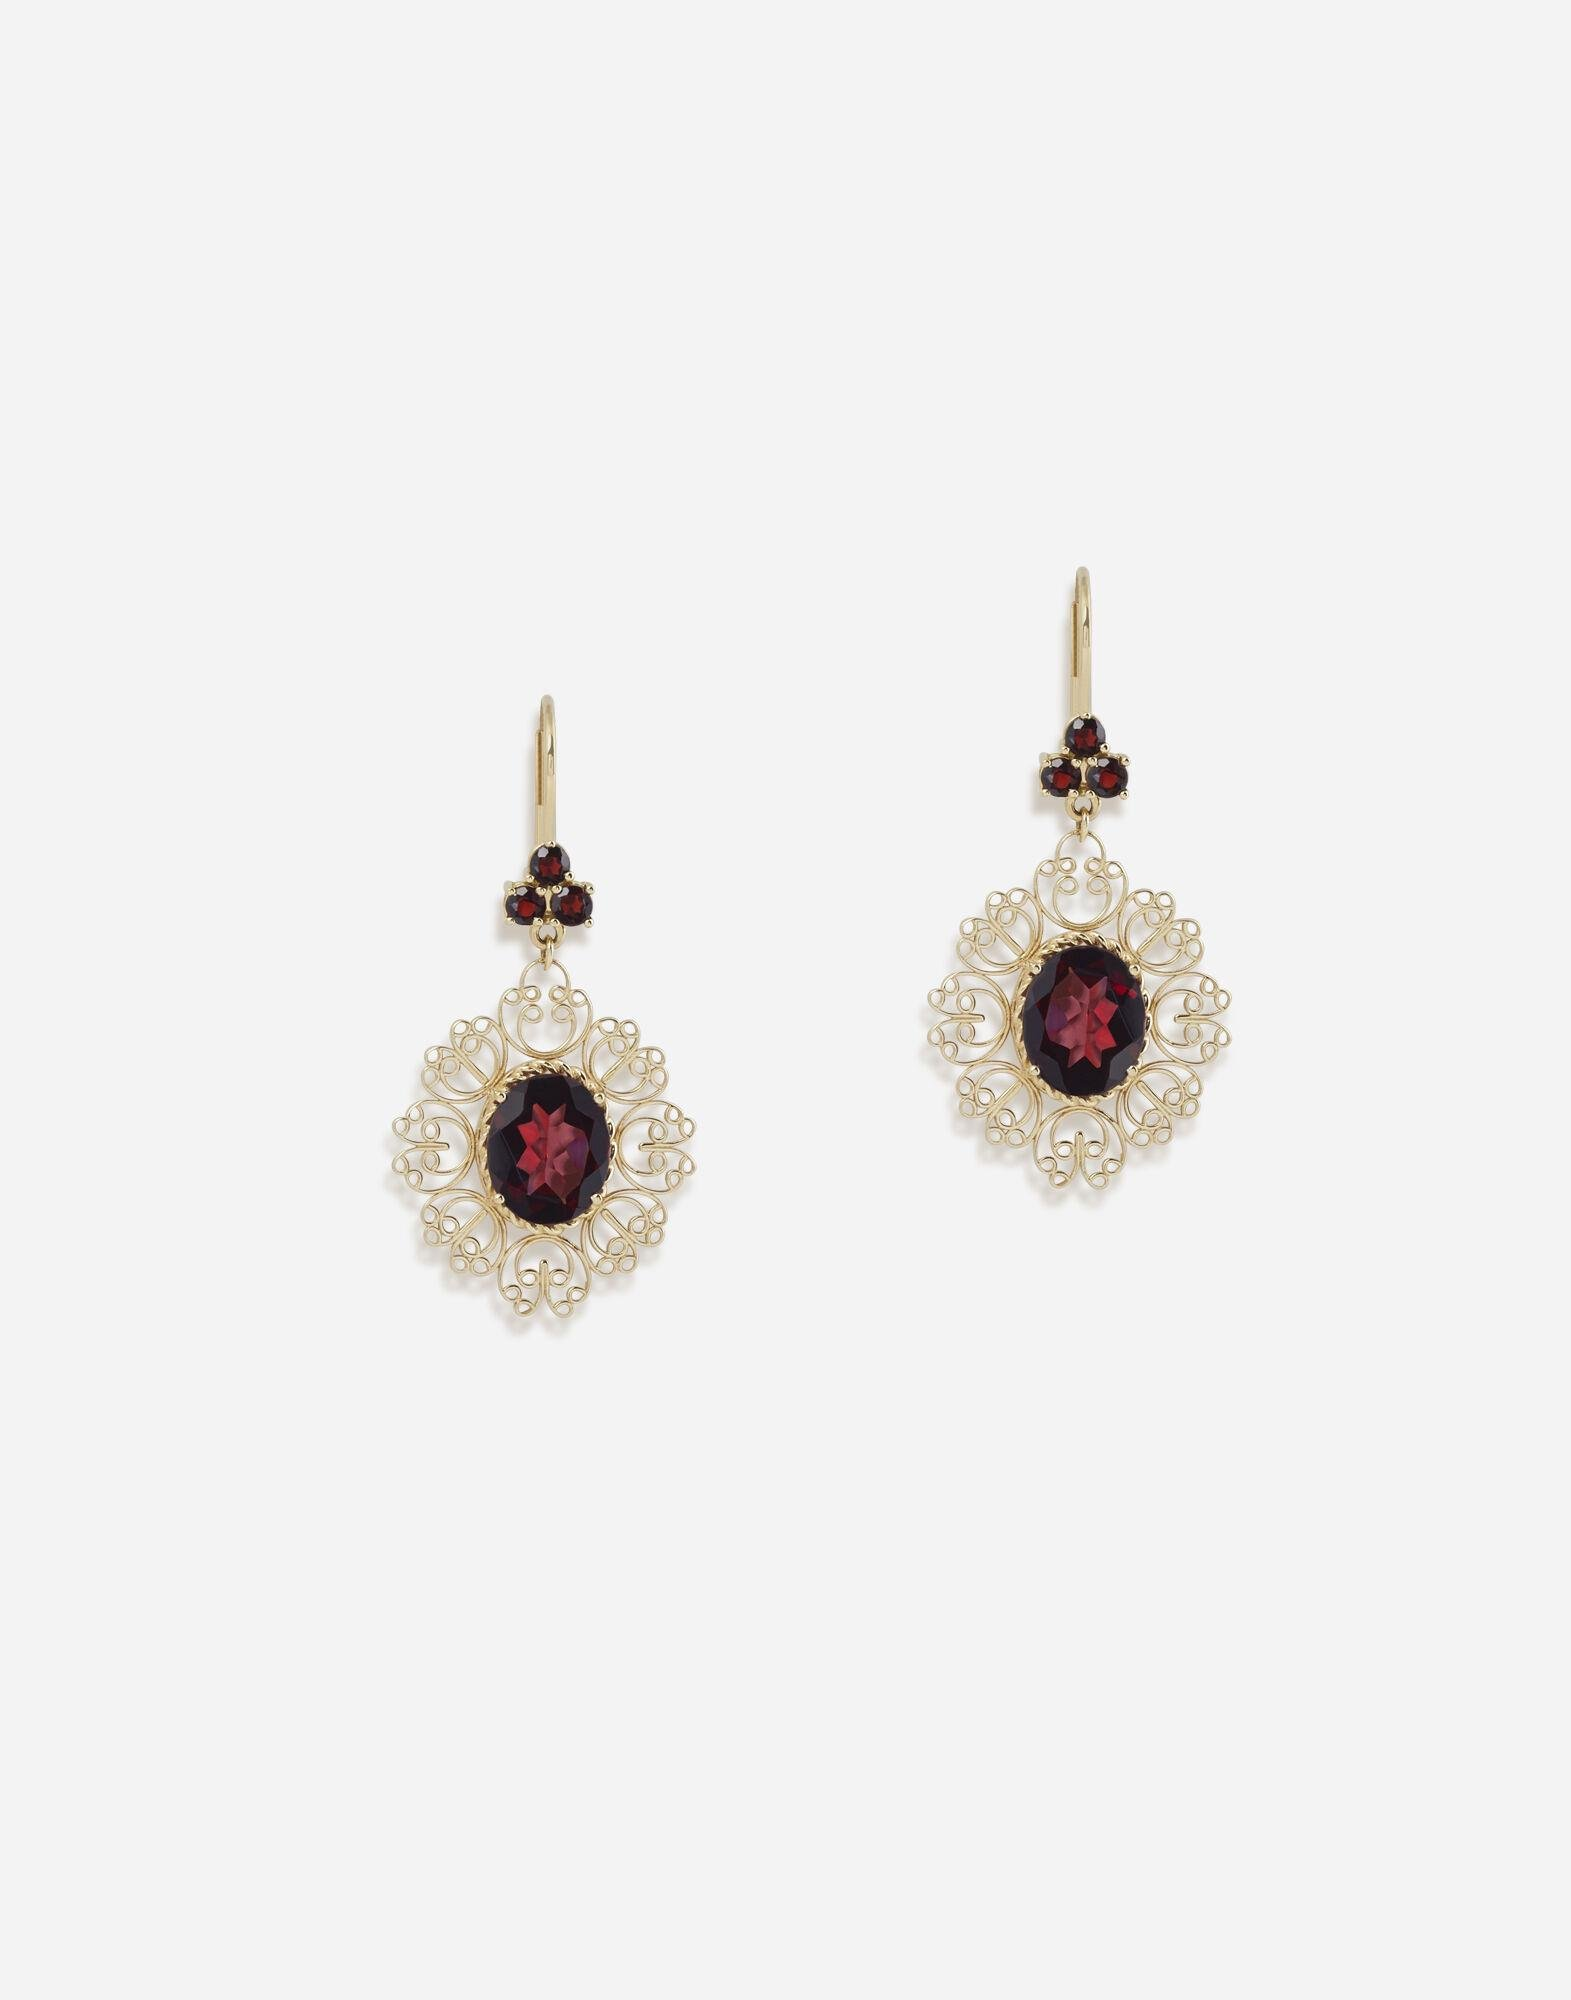 Barocco earrings in yellow gold with rhodolite garnets